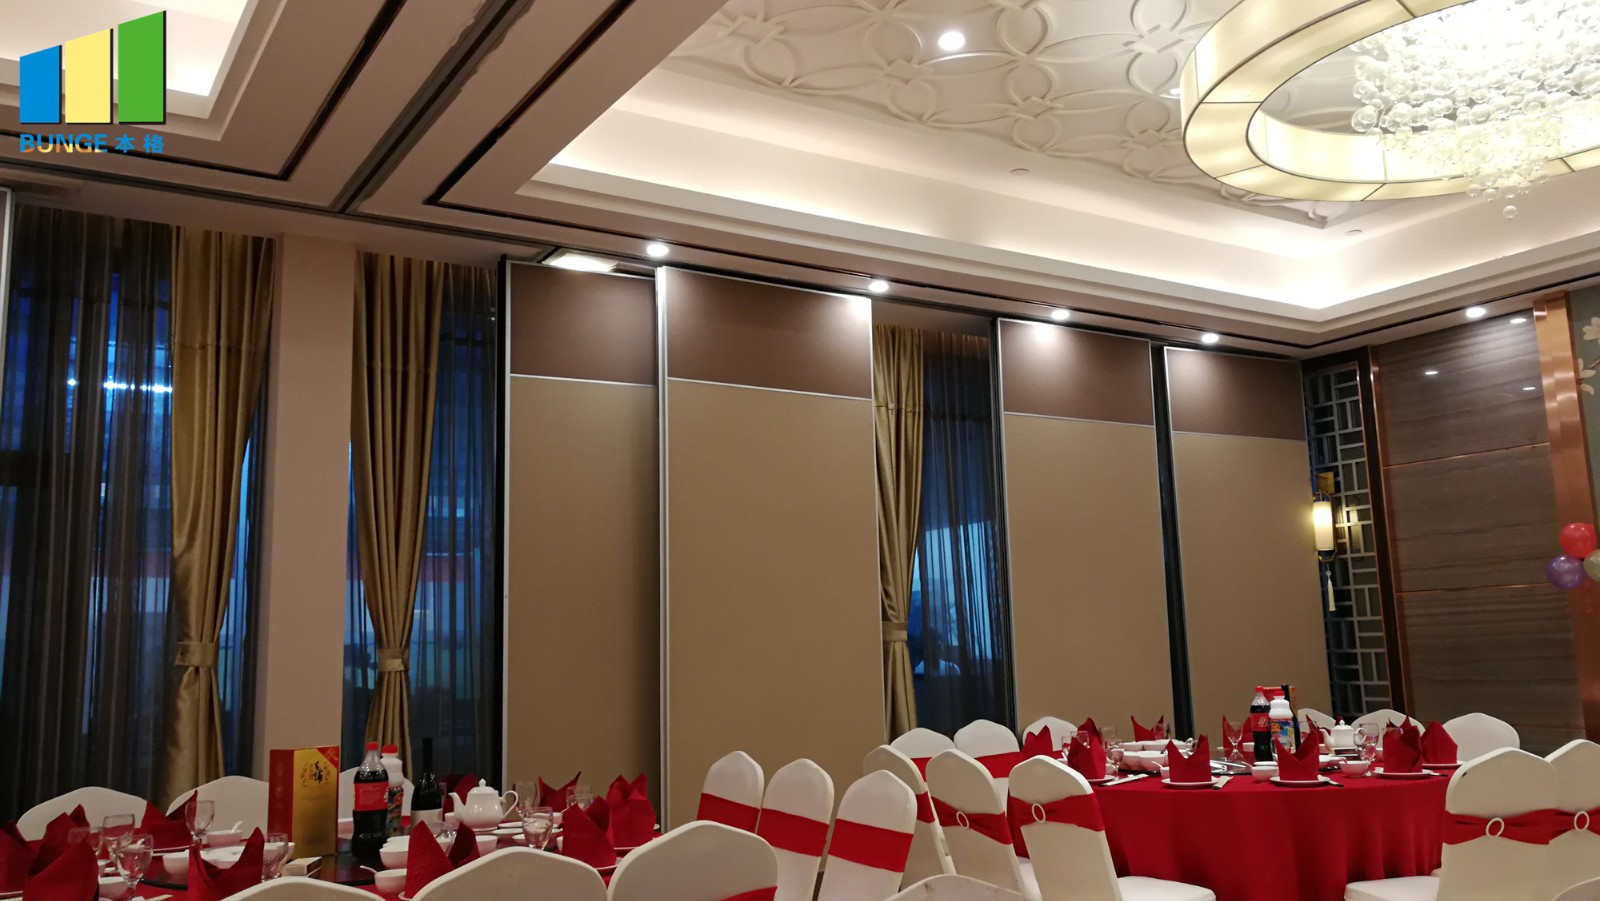 Bunge-Find Operable Partition Walls Soundproof Material Sliding Aluminium Track-14